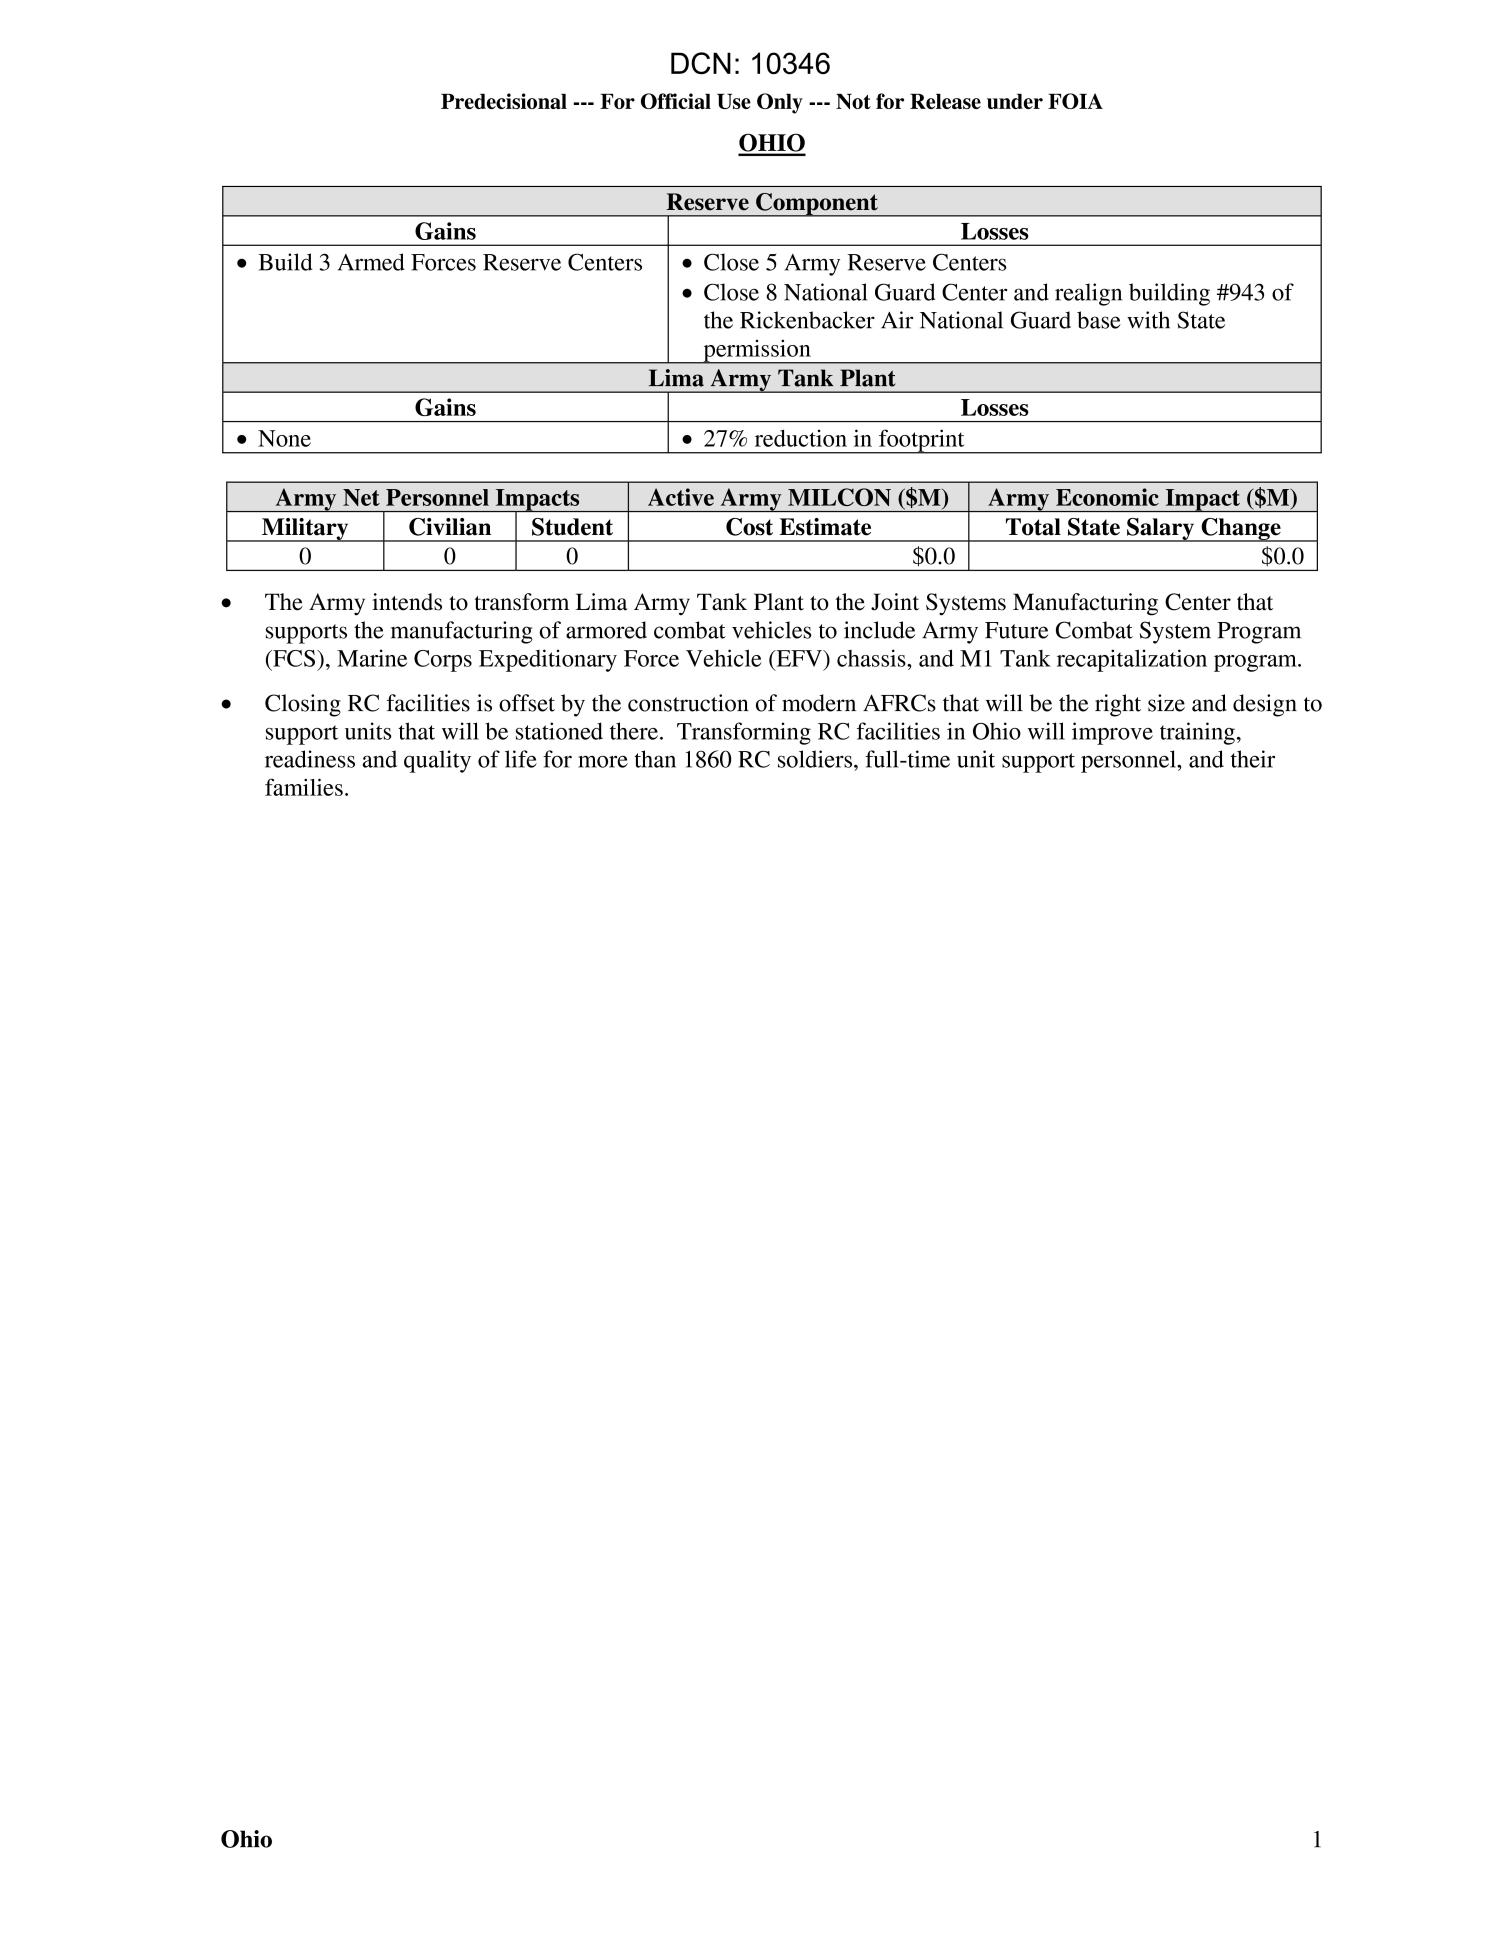 Army Installations and State Action Papers - Ohio